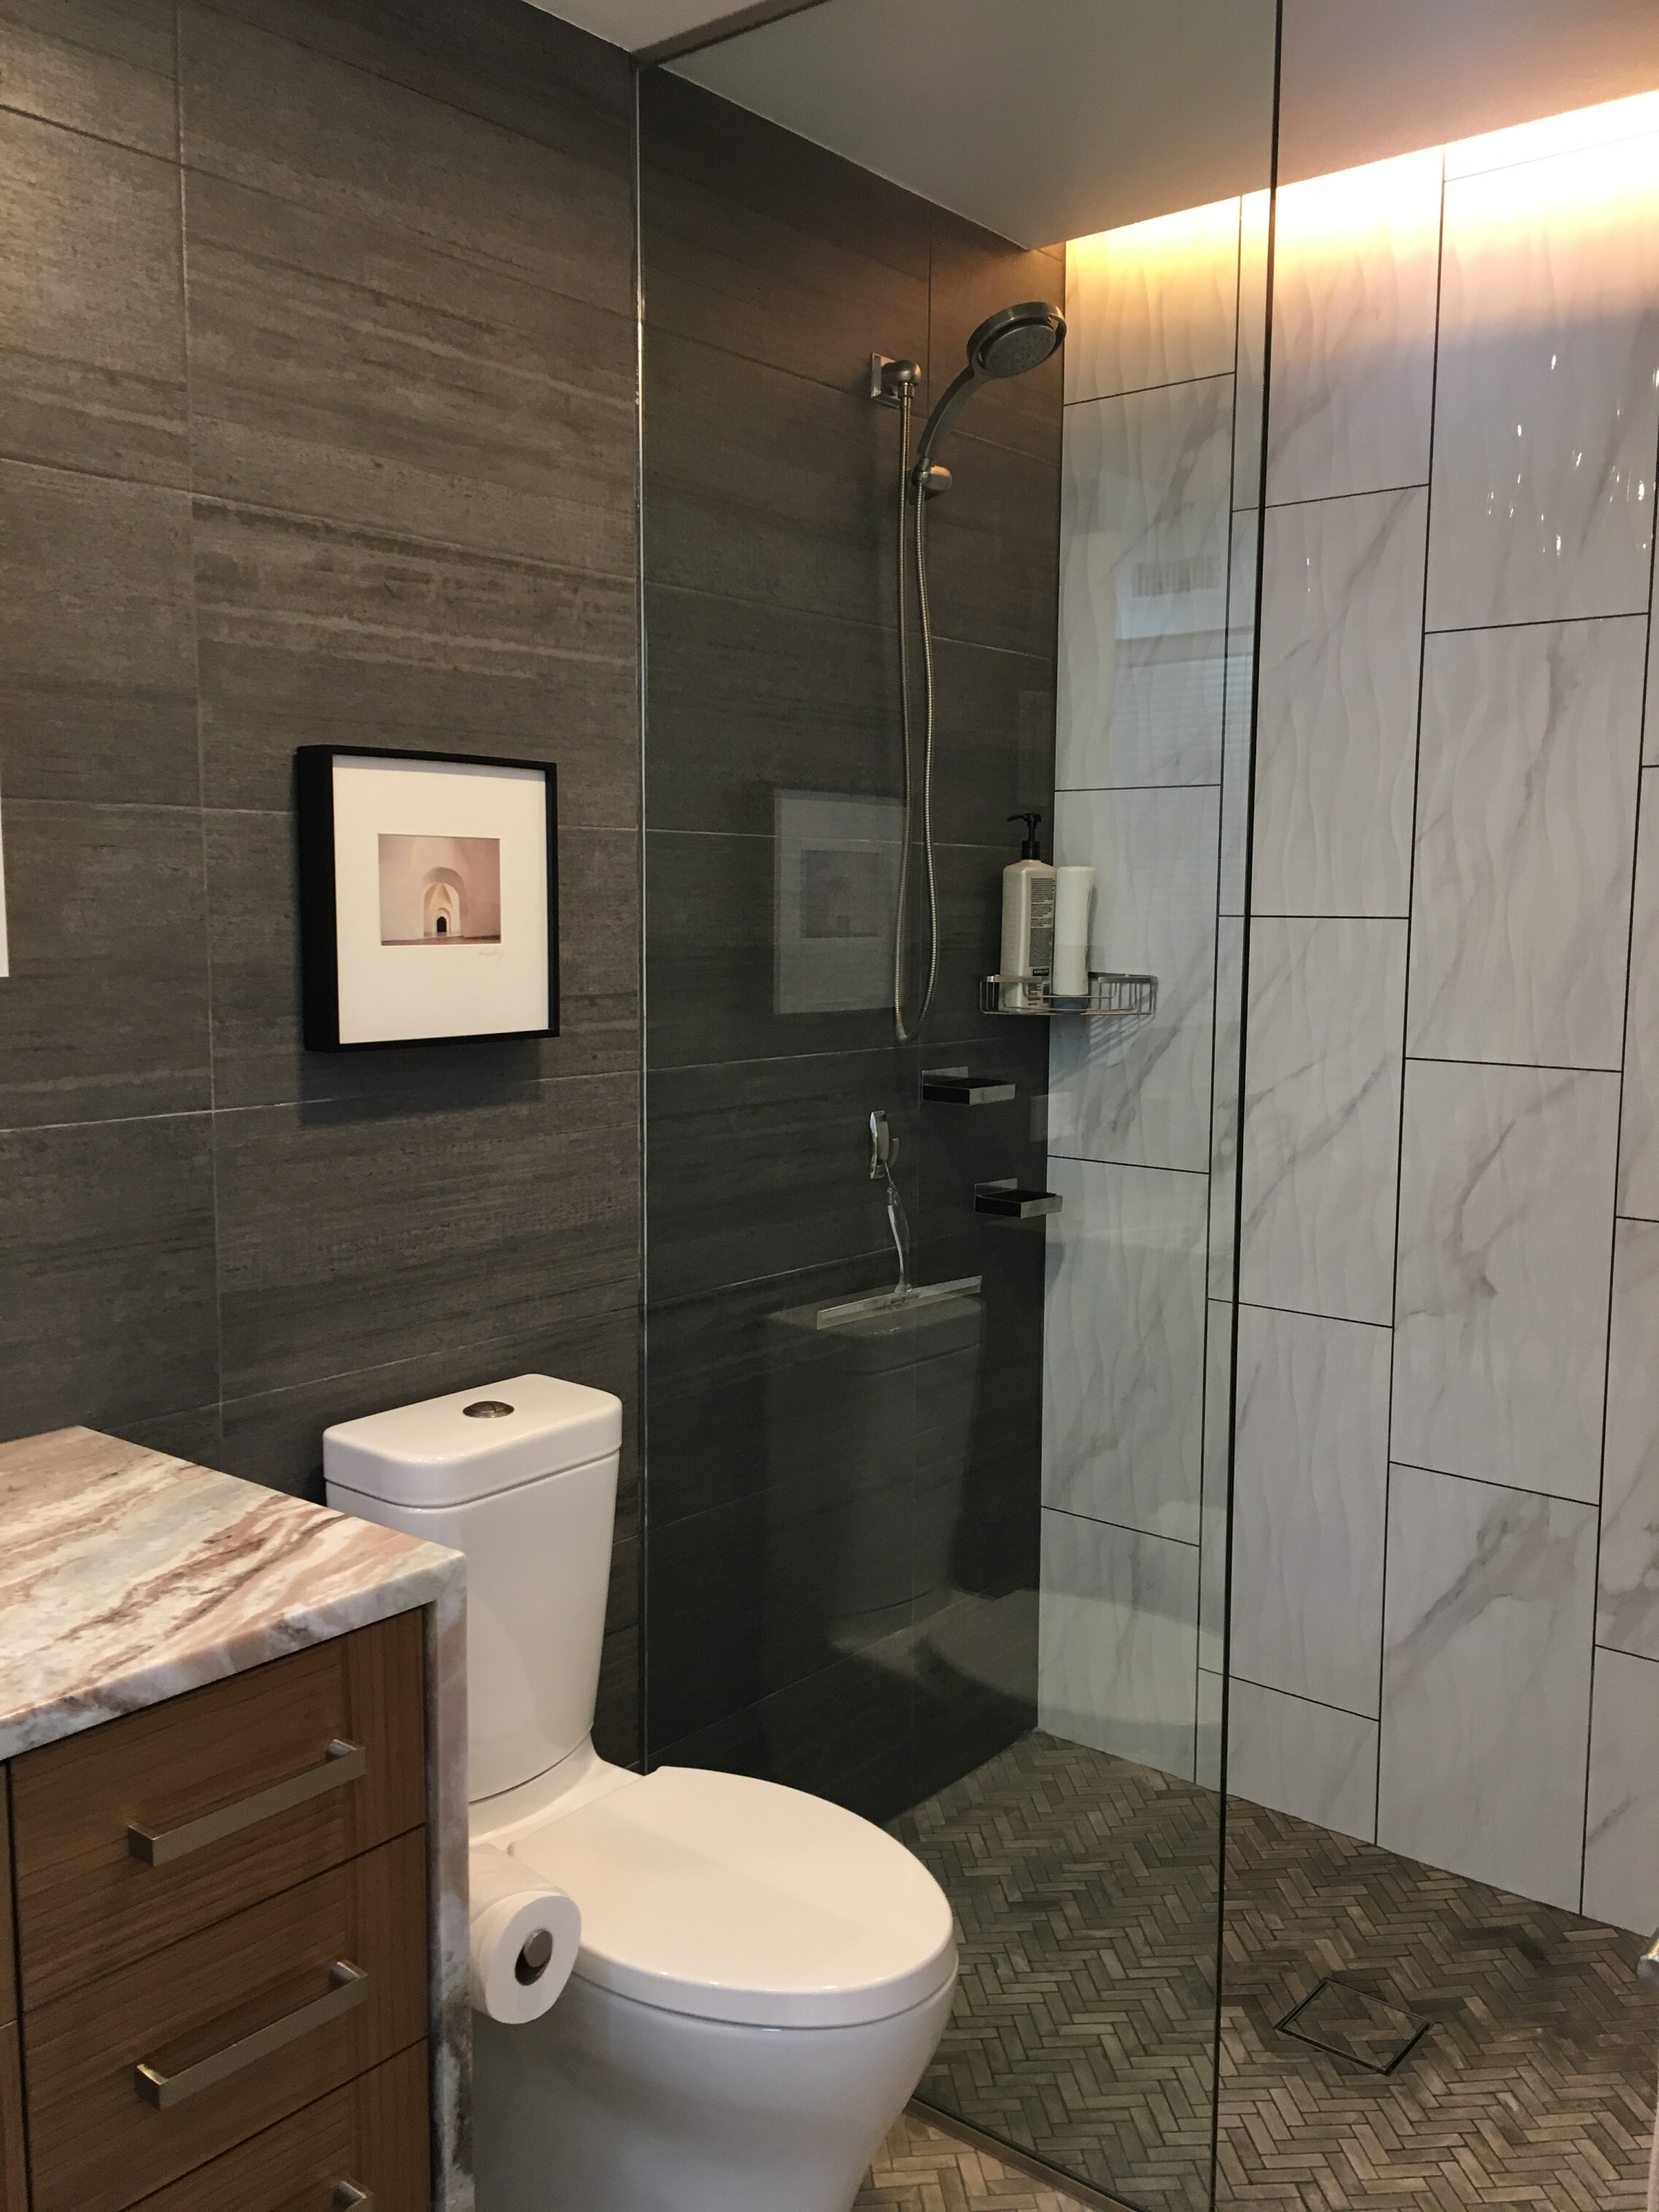 Bathroom Cabinets Palm Springs CA Design One Cabinetry - Bathroom remodel palm desert ca